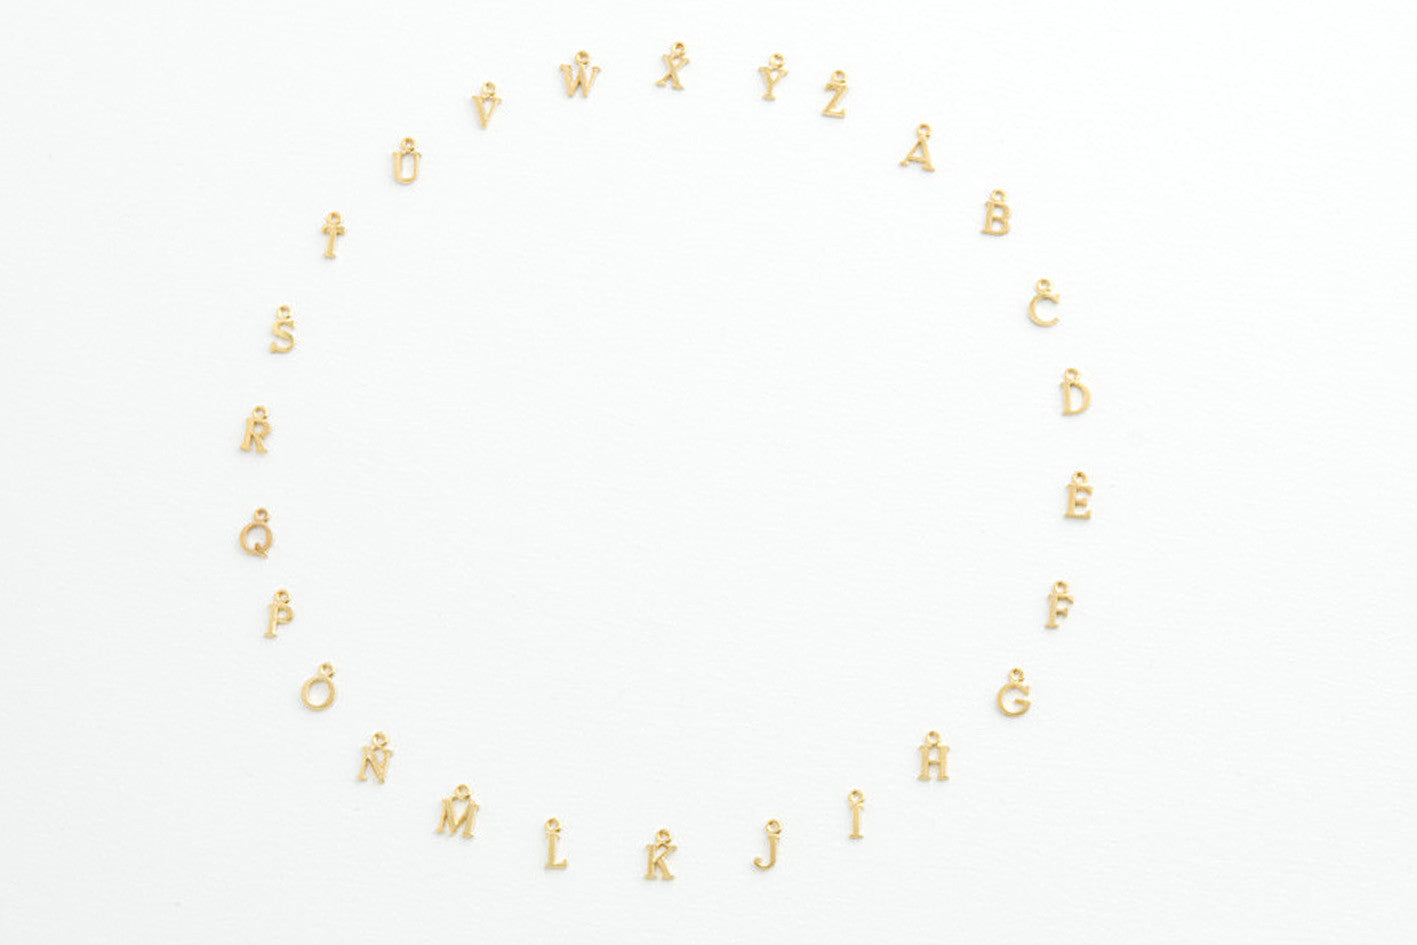 ....Kette ALPHABET BLAU vergoldet..Necklace ALPHABET BLEU gold plated....